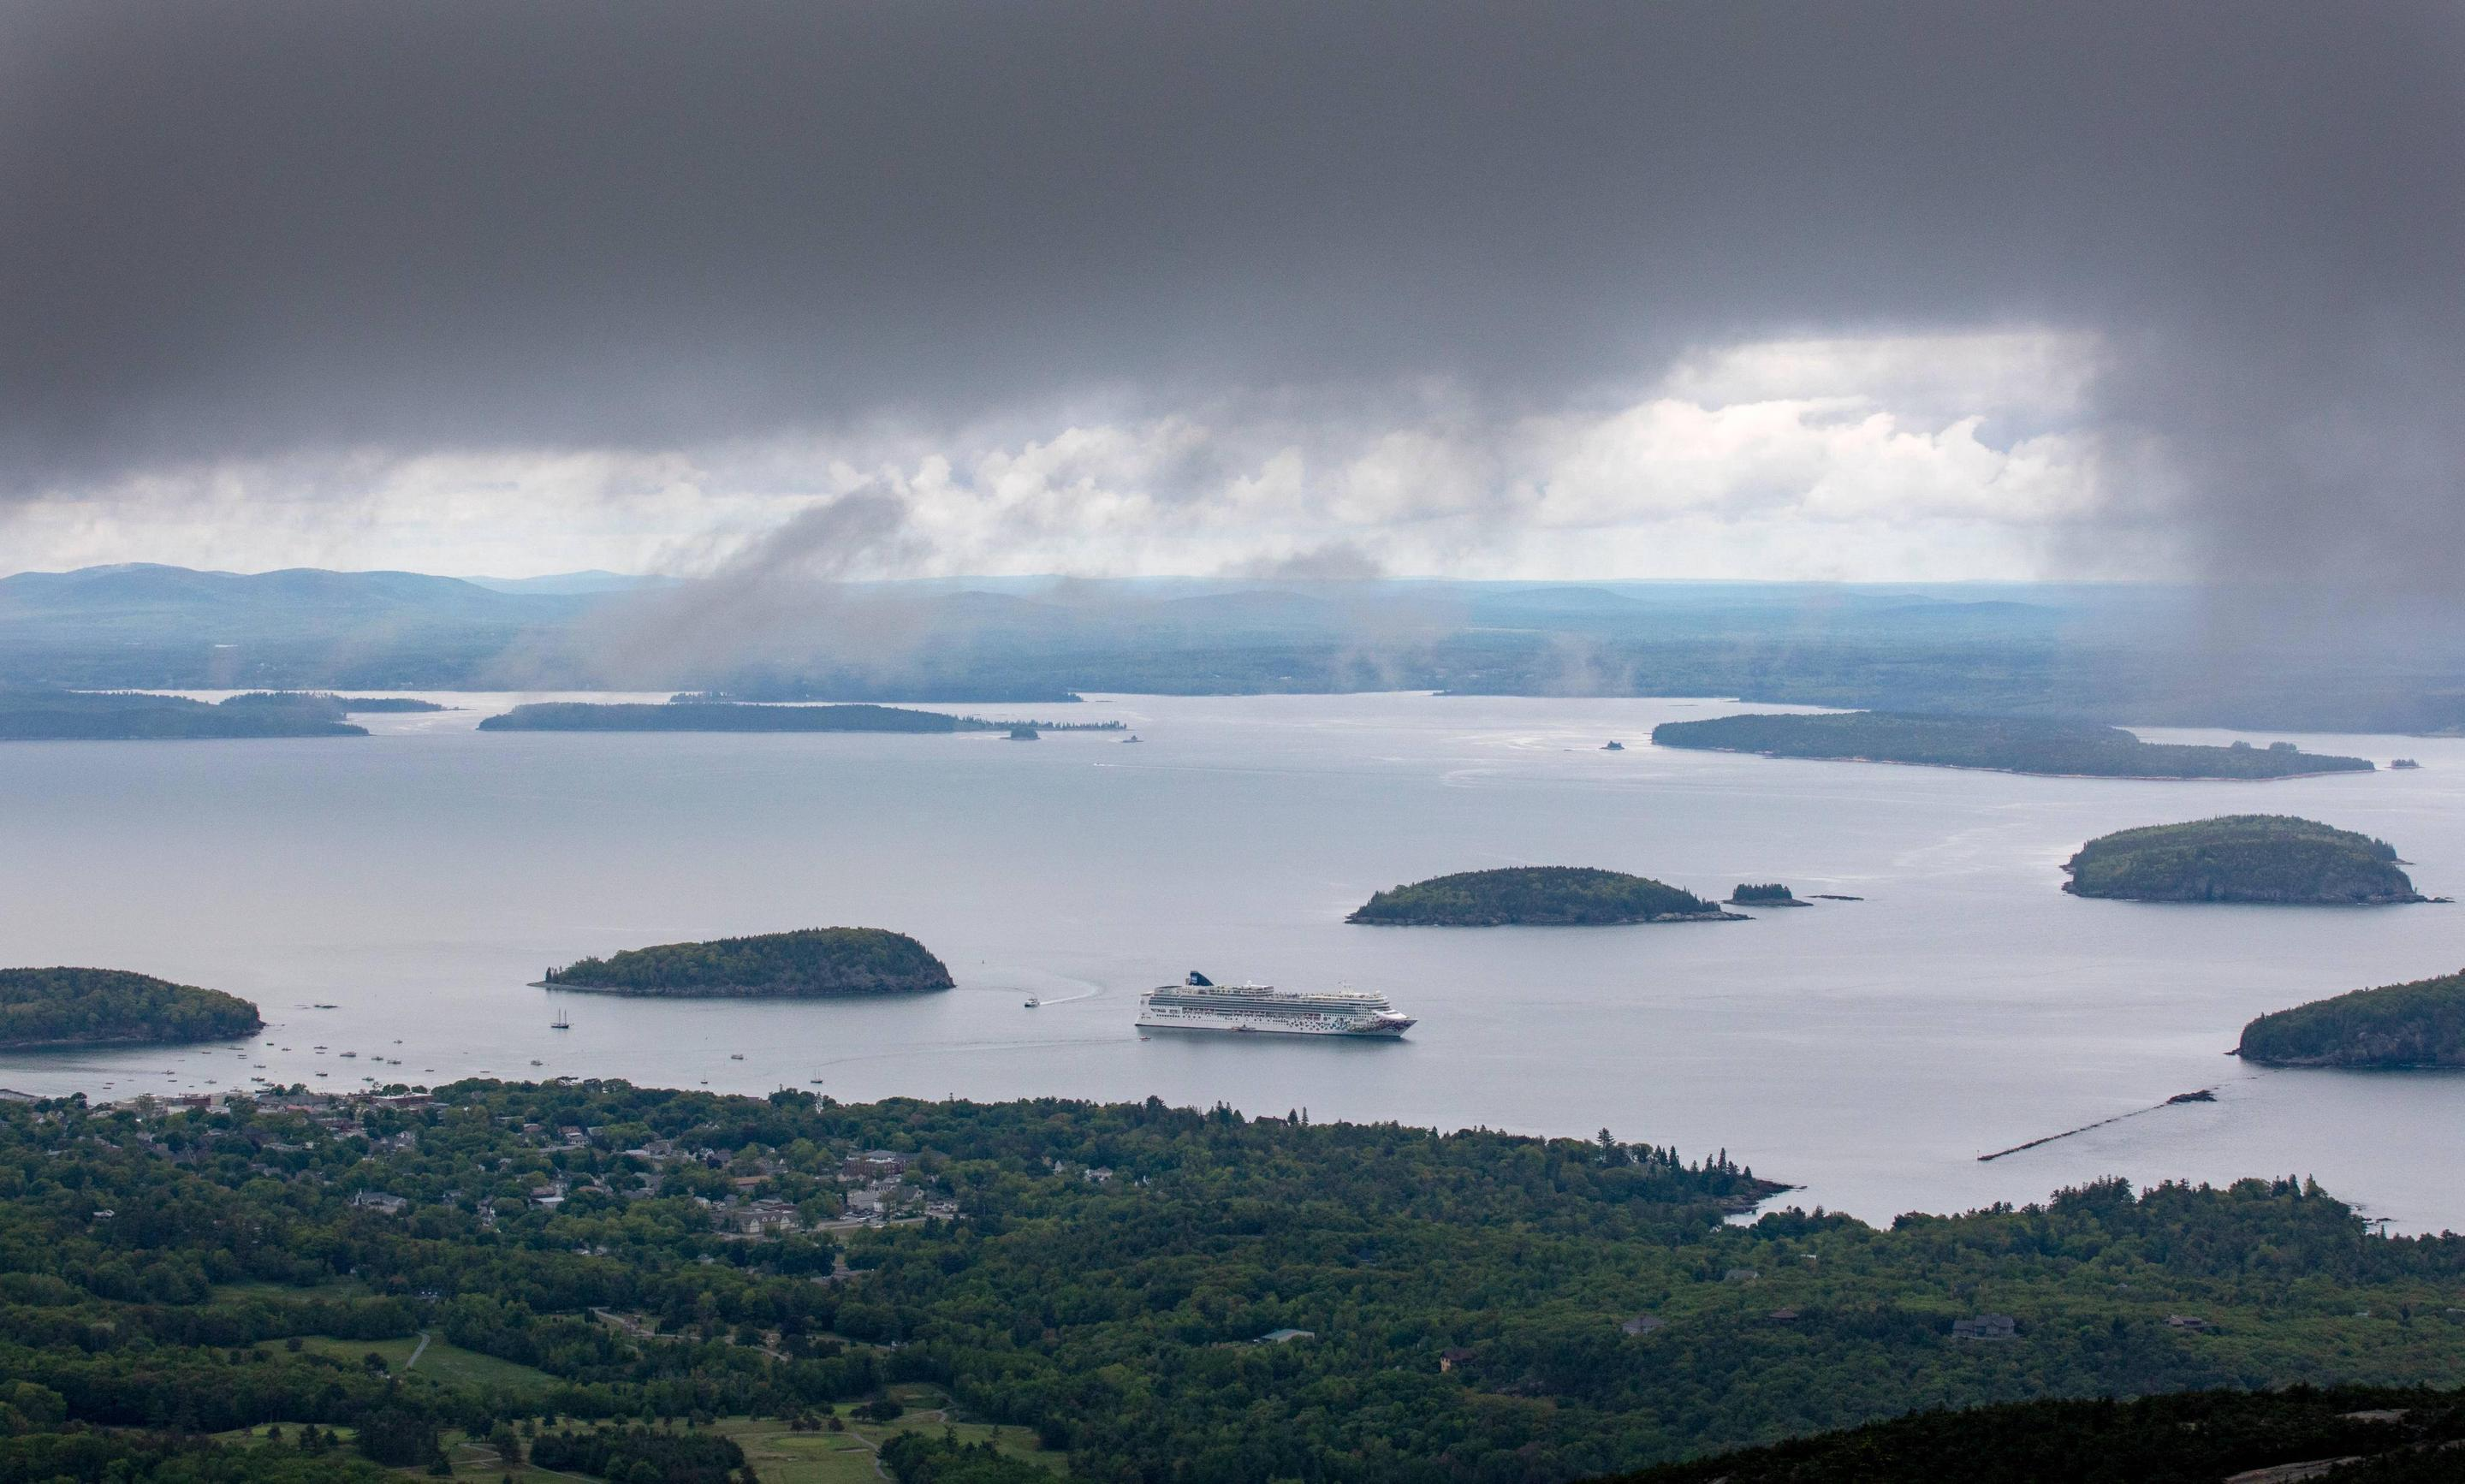 Expansive view of a harbor with a cruise ship surrounded by small islands and a dark band of clouds along topView of Bar Harbor from Cadillac Mountain with dark clouds quickly descending.